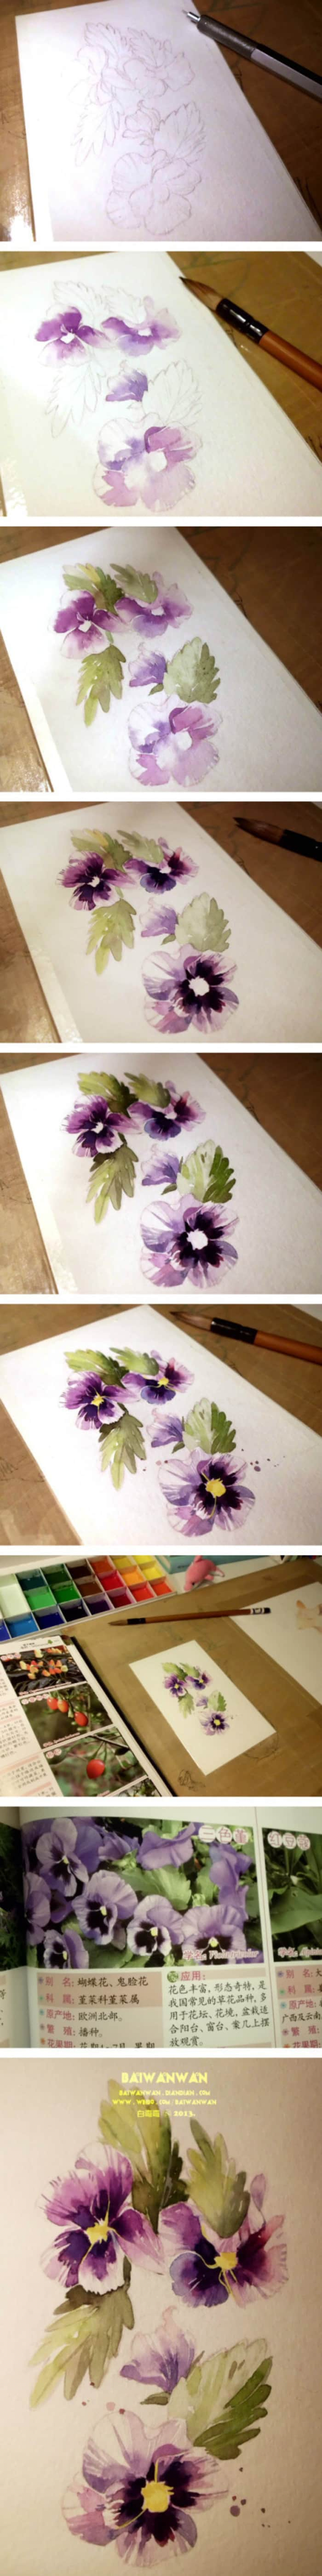 5. WATER-COLORING IS ALL ABOUT LAYERING TONES AND PLAYING WITH WATER